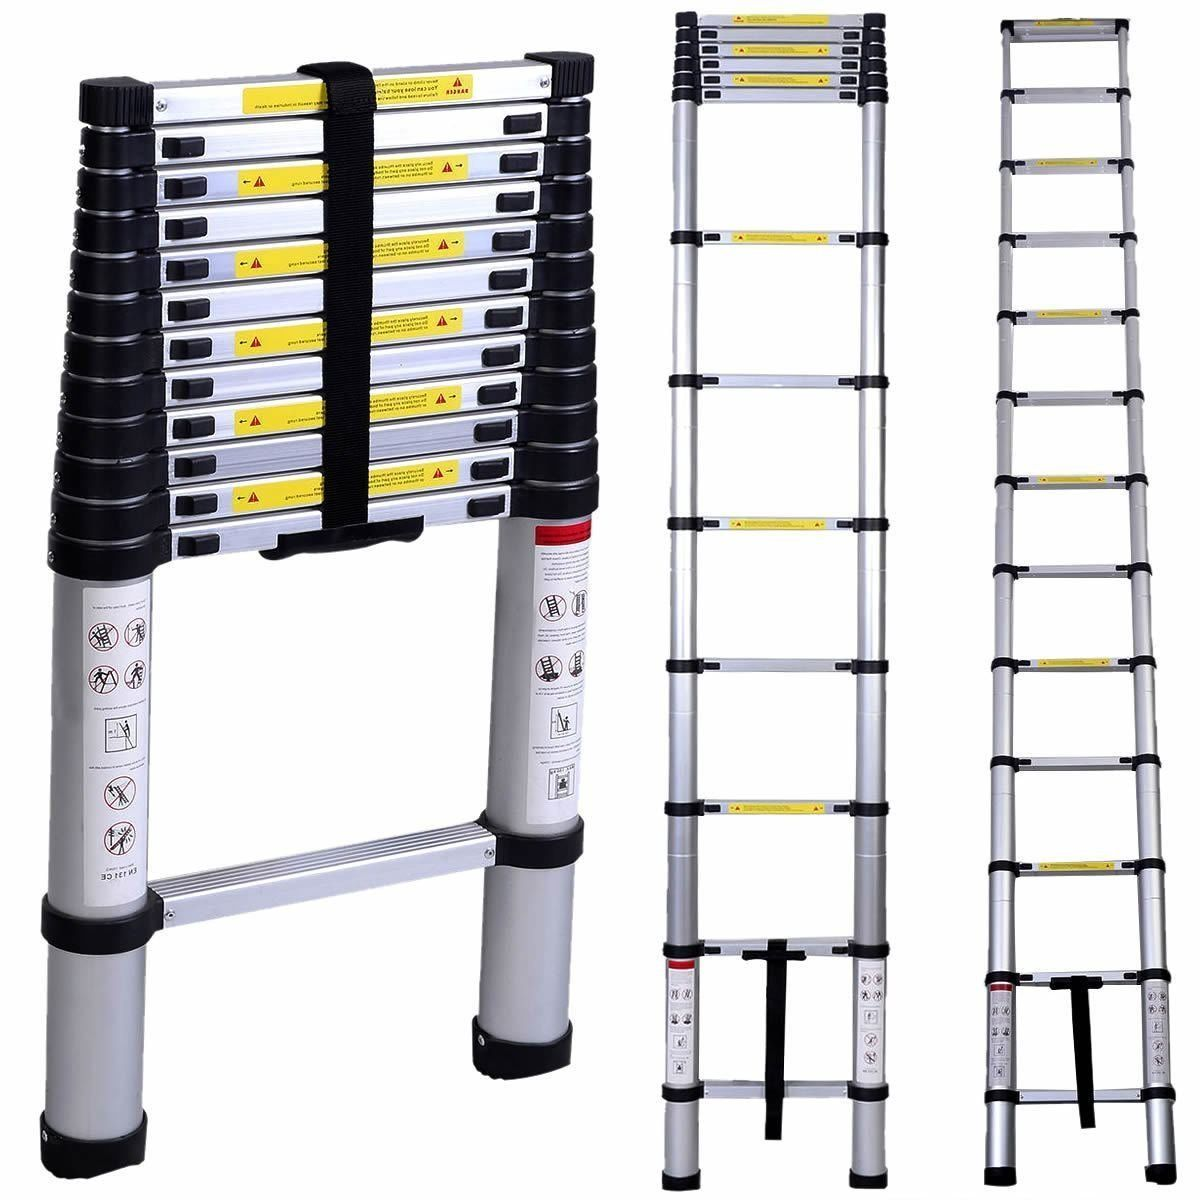 Oshion 12 5ft En131 Aluminum Telescoping Telescopic Extension Ladder 330 Pound Capacity Amazon Com Telescopic Ladder Aluminium Ladder Ladder